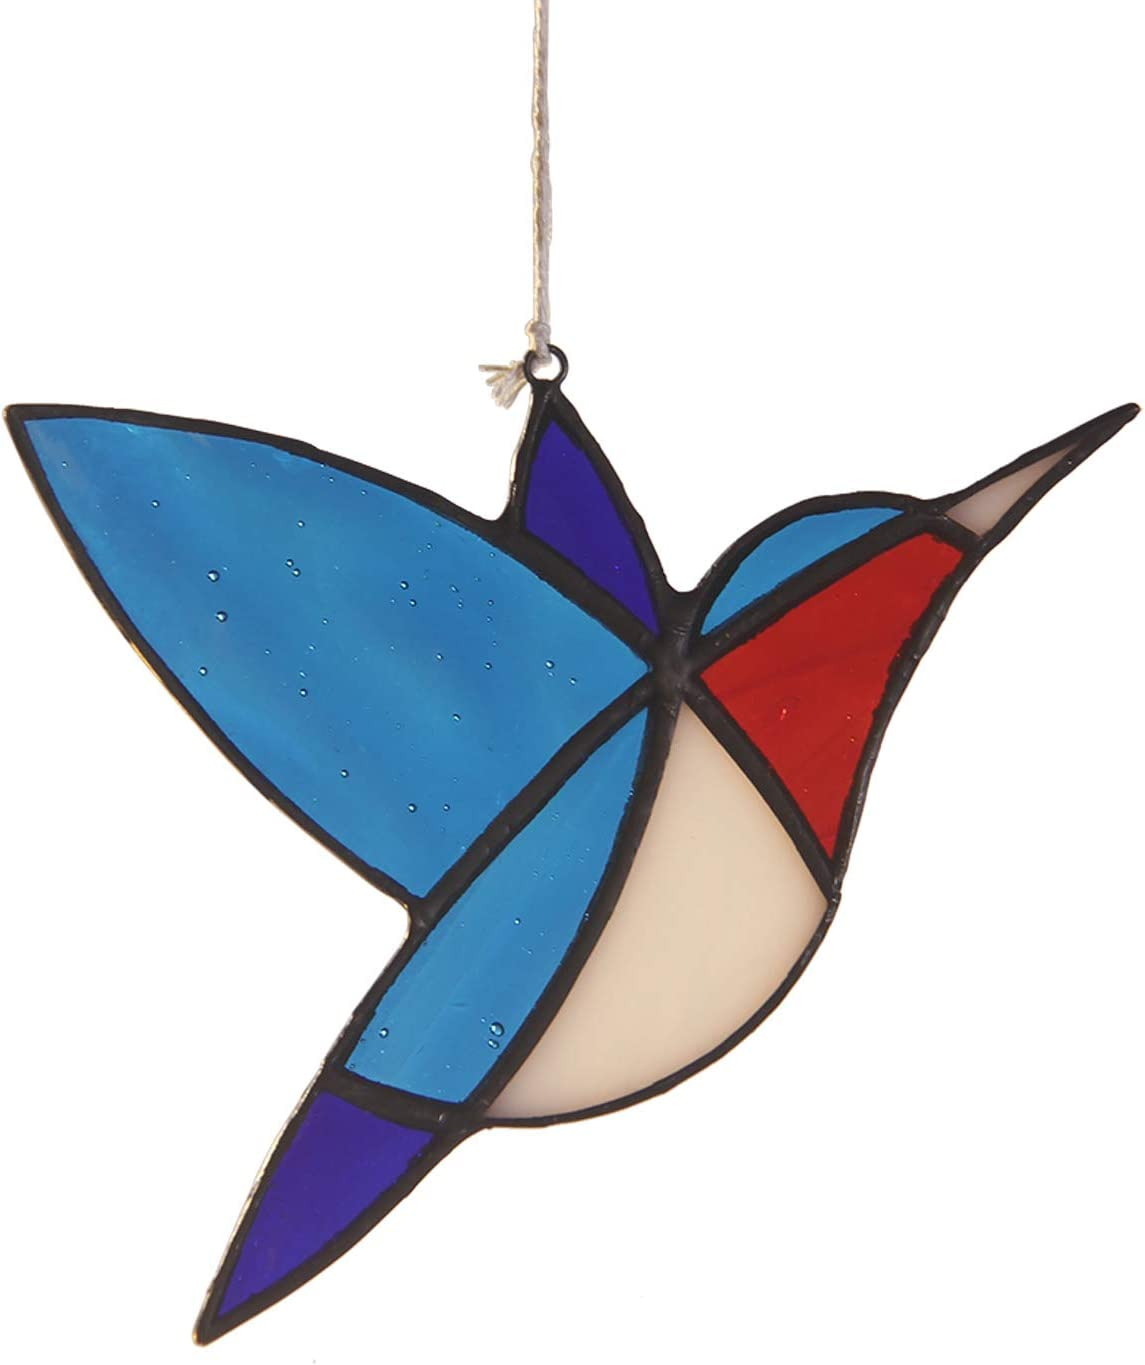 Little Bird Stained Glass Sun Catcher for Window Decoration Outdoor Garden Decor A Lovely Gift for Your Family